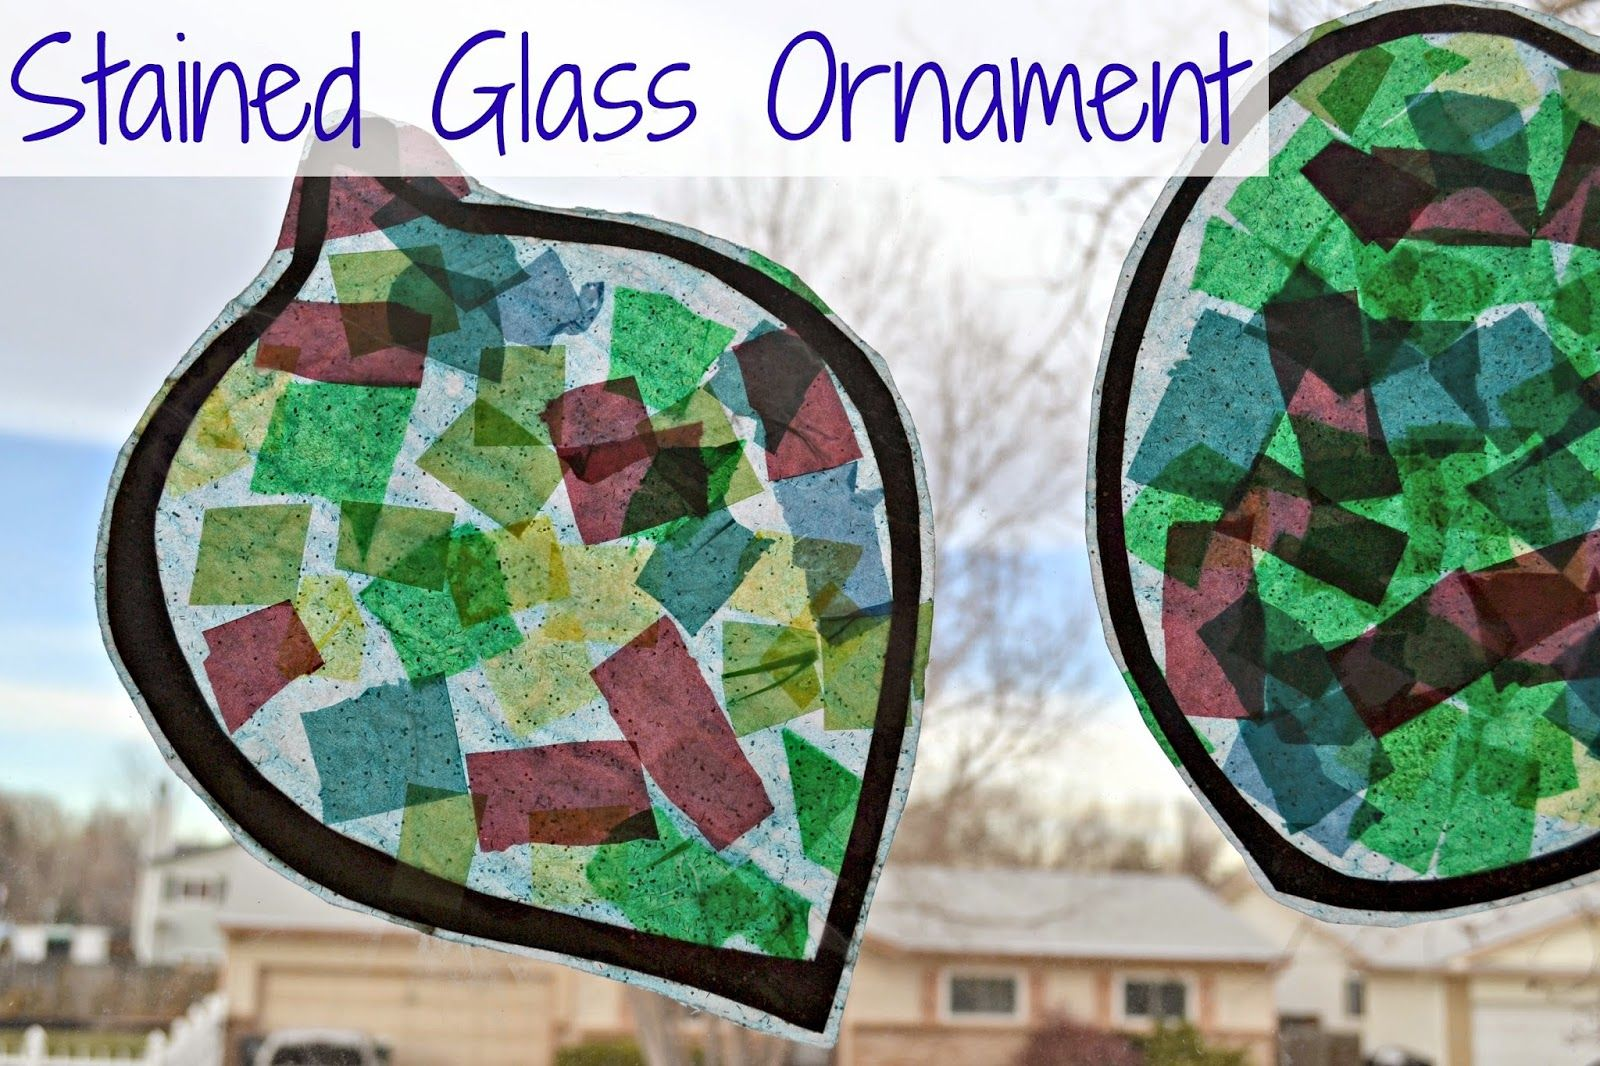 Stained Glass Ornament Preschool Christmas Craft Idea Preschool Christmas Crafts Stained Glass Ornaments Preschool Christmas